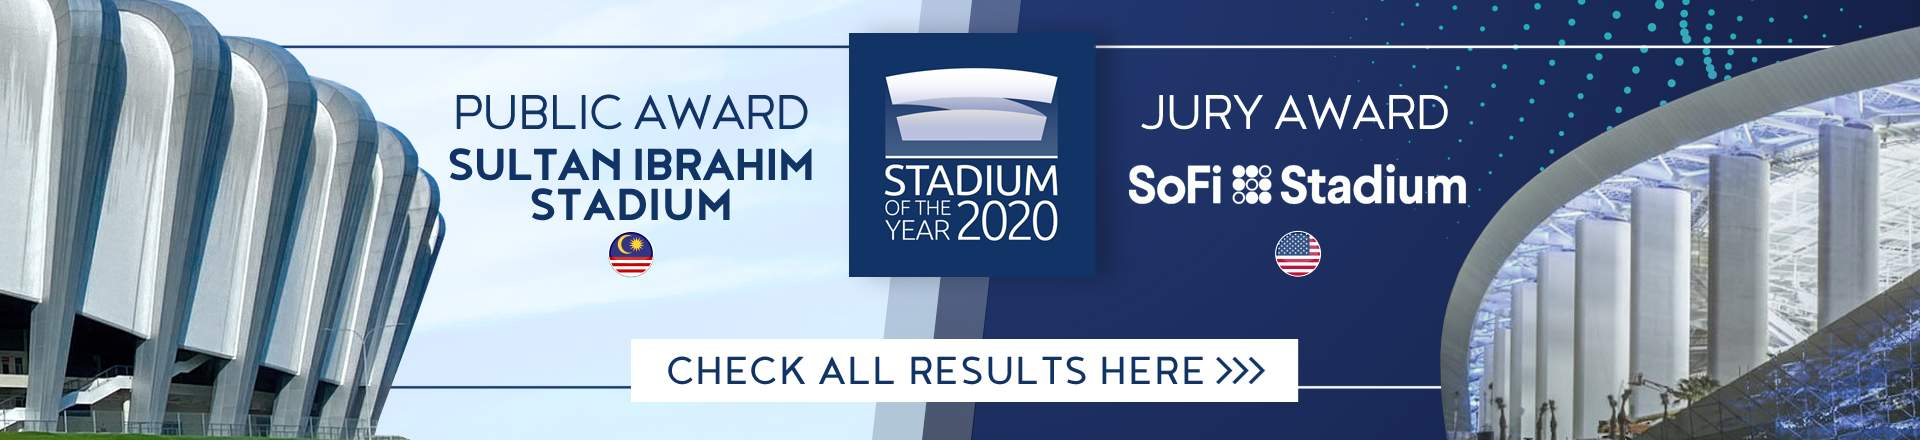 Stadium of the Year 2020 - see results!